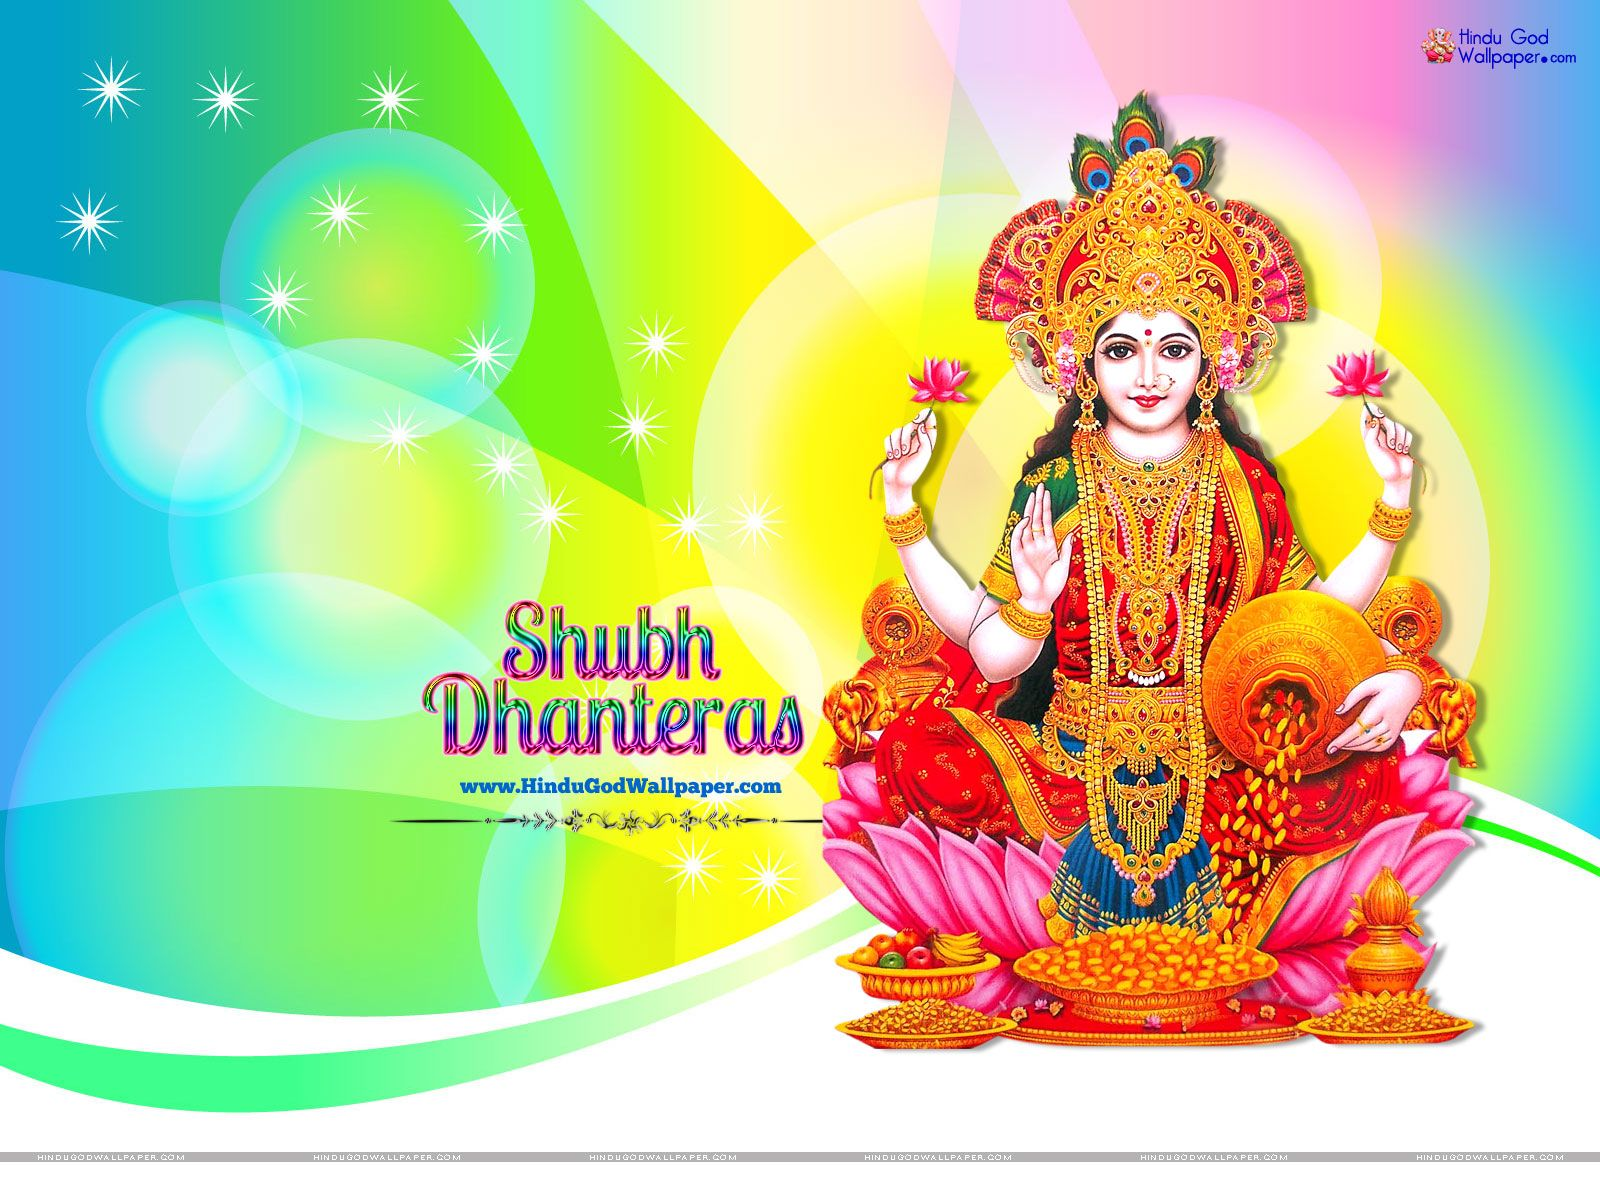 Happy Diwali And Dhanteras Wallpapers: Shubh Dhanteras Wallpapers & Images Free Download